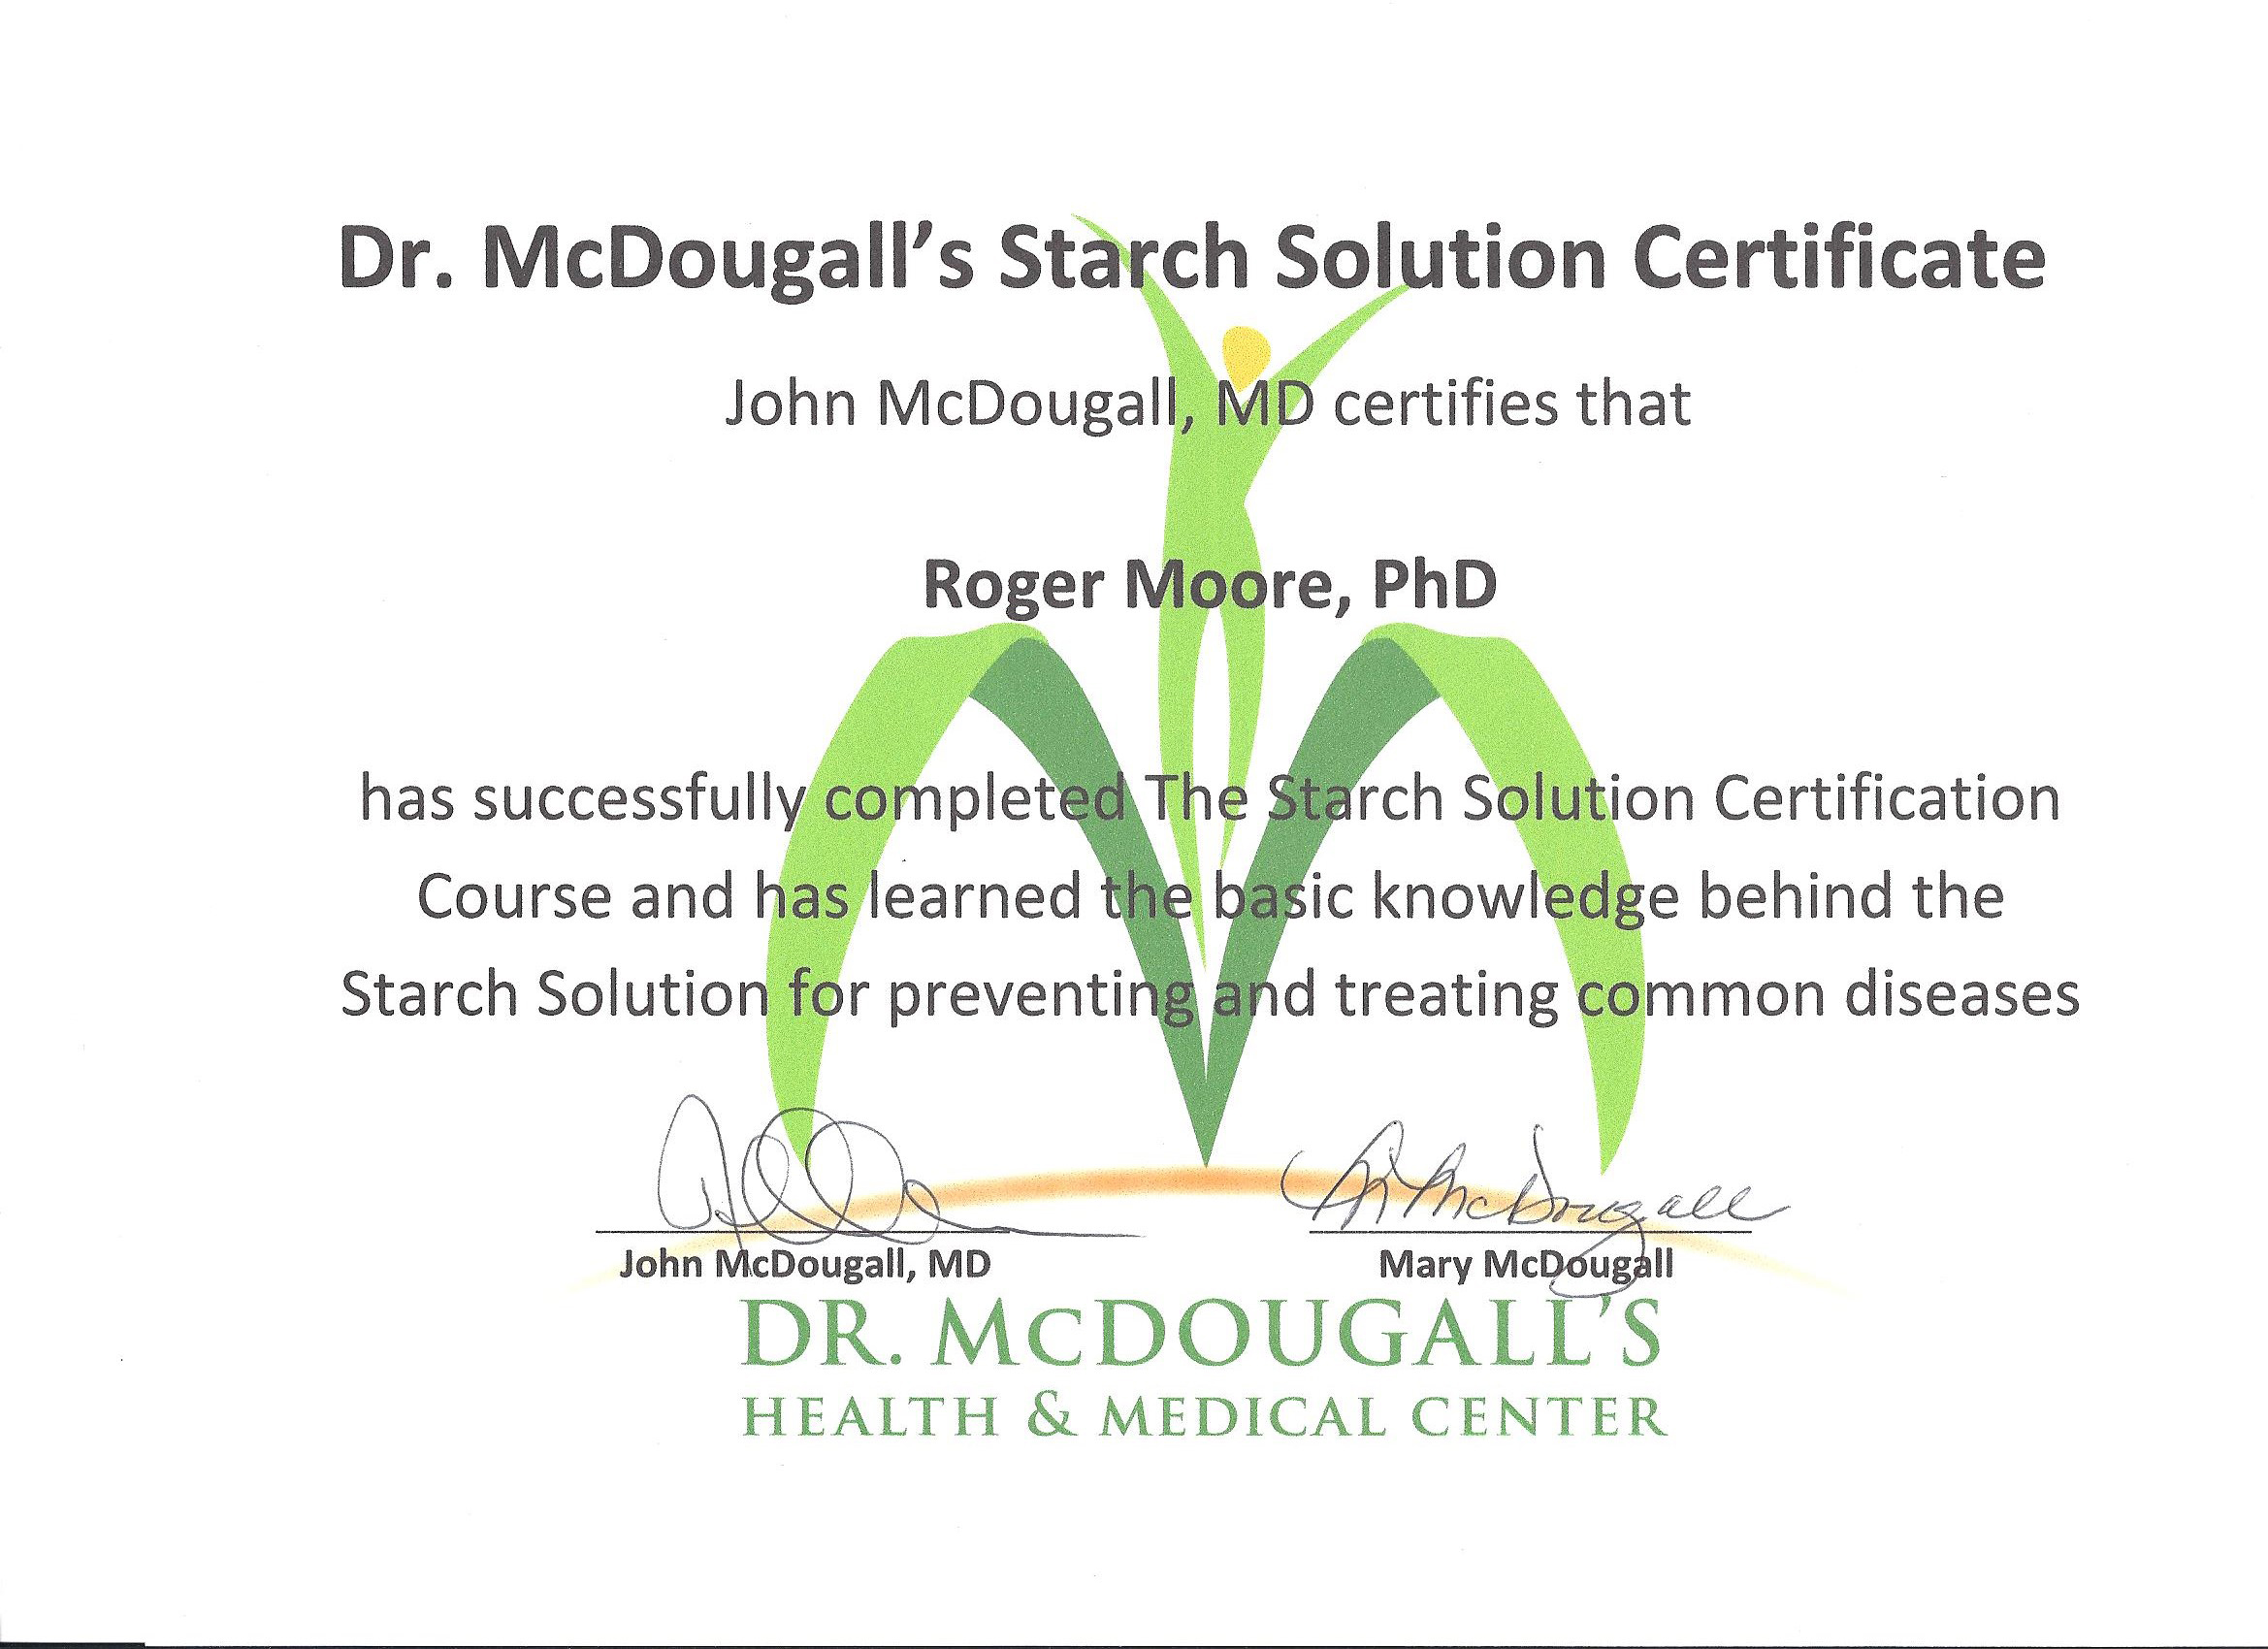 Starch Solution Certification